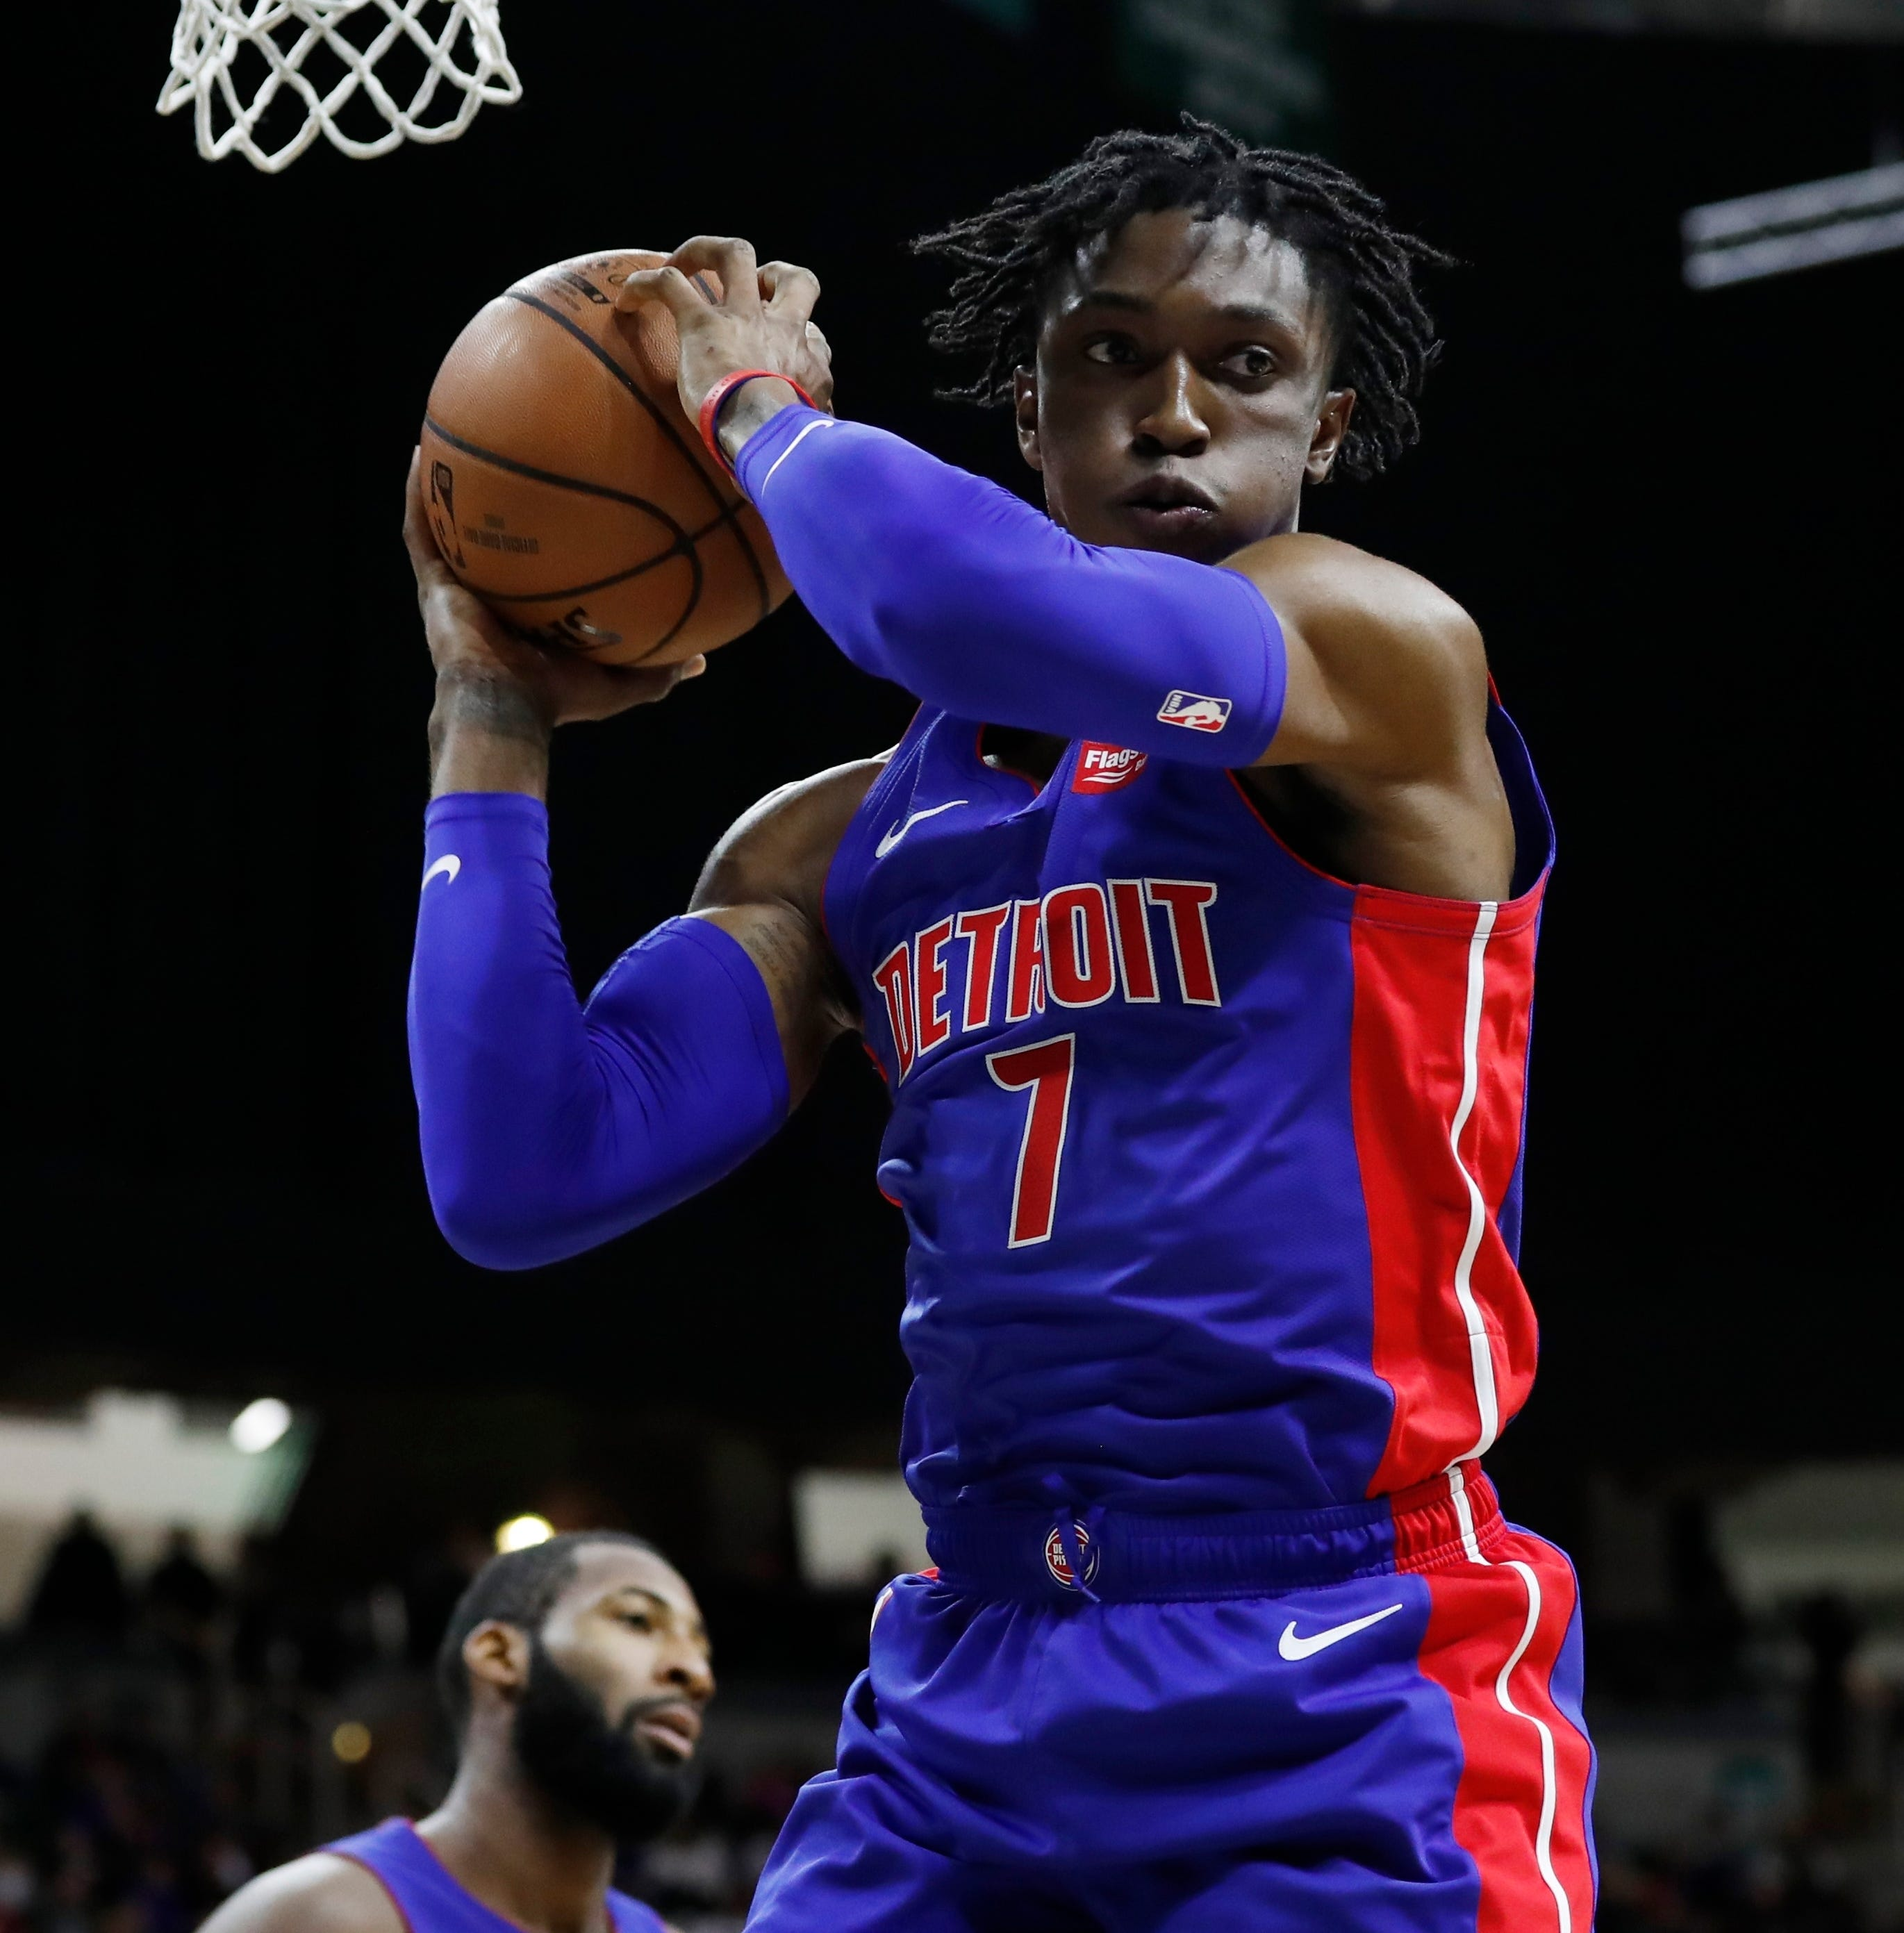 Stanley Johnson continues to work through growing pains